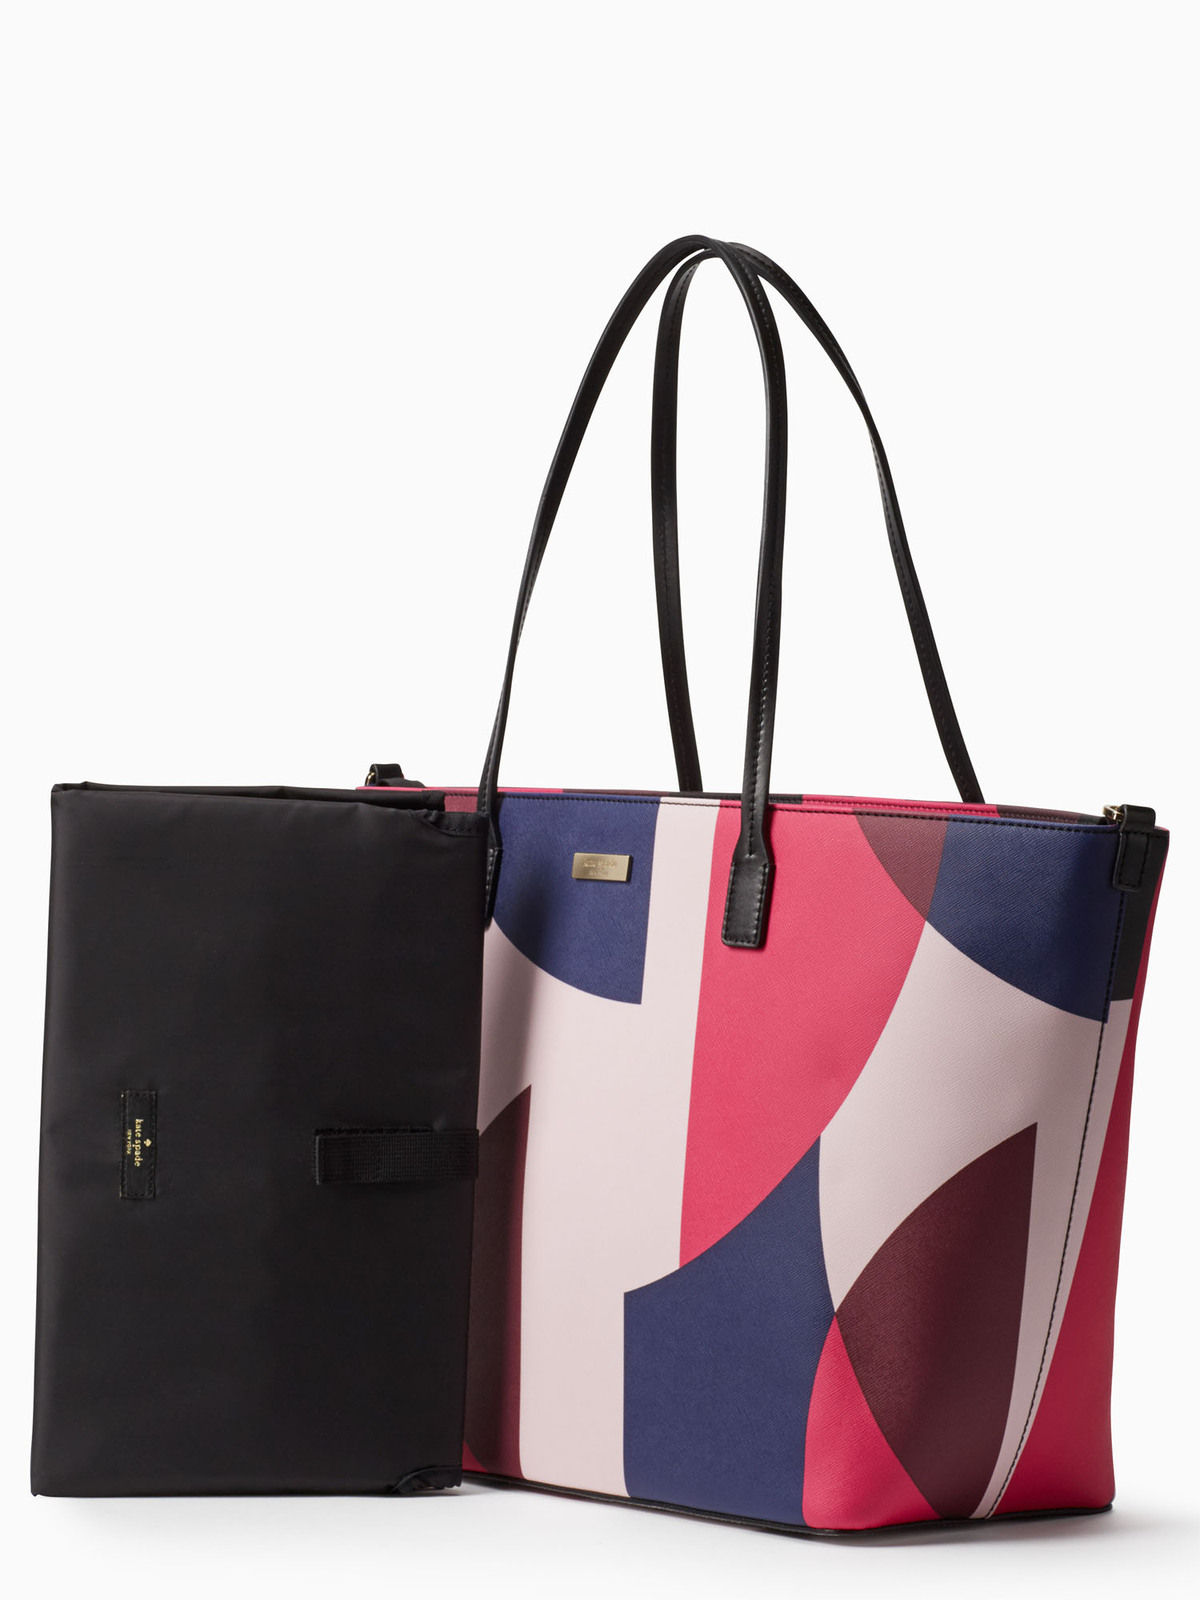 Kate Spade Shore Street Margareta Baby Bag